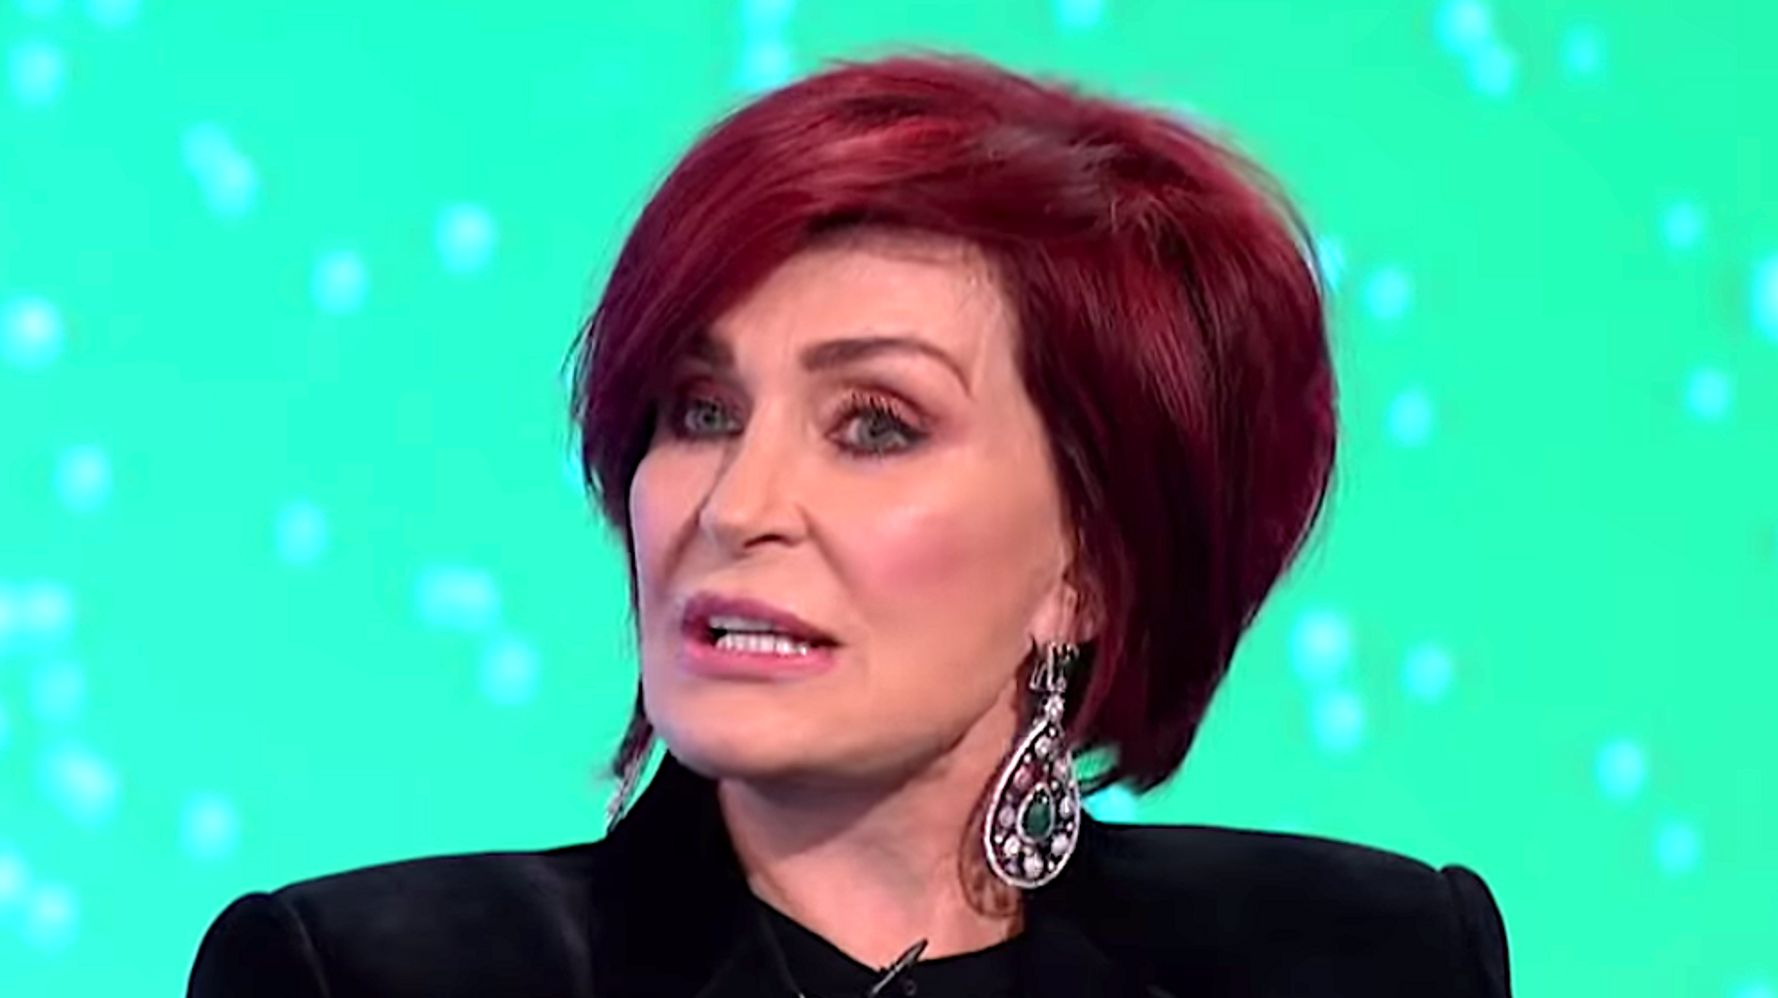 Westlake Legal Group 5e0a42a2240000c81c5a4909 Sharon Osbourne Says She Fired Assistant After He Saved Her Dogs During A House Fire